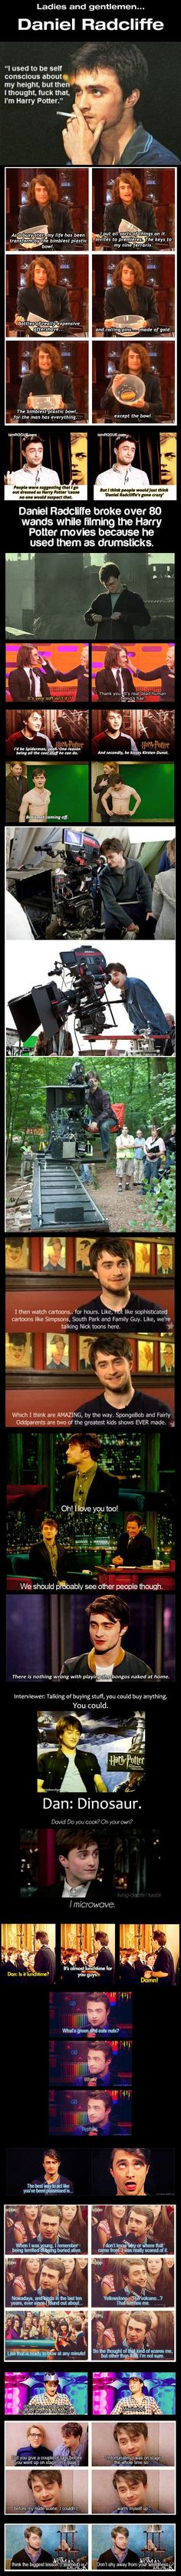 Ladies and Gentlemen...Daniel Radcliffe... Lol